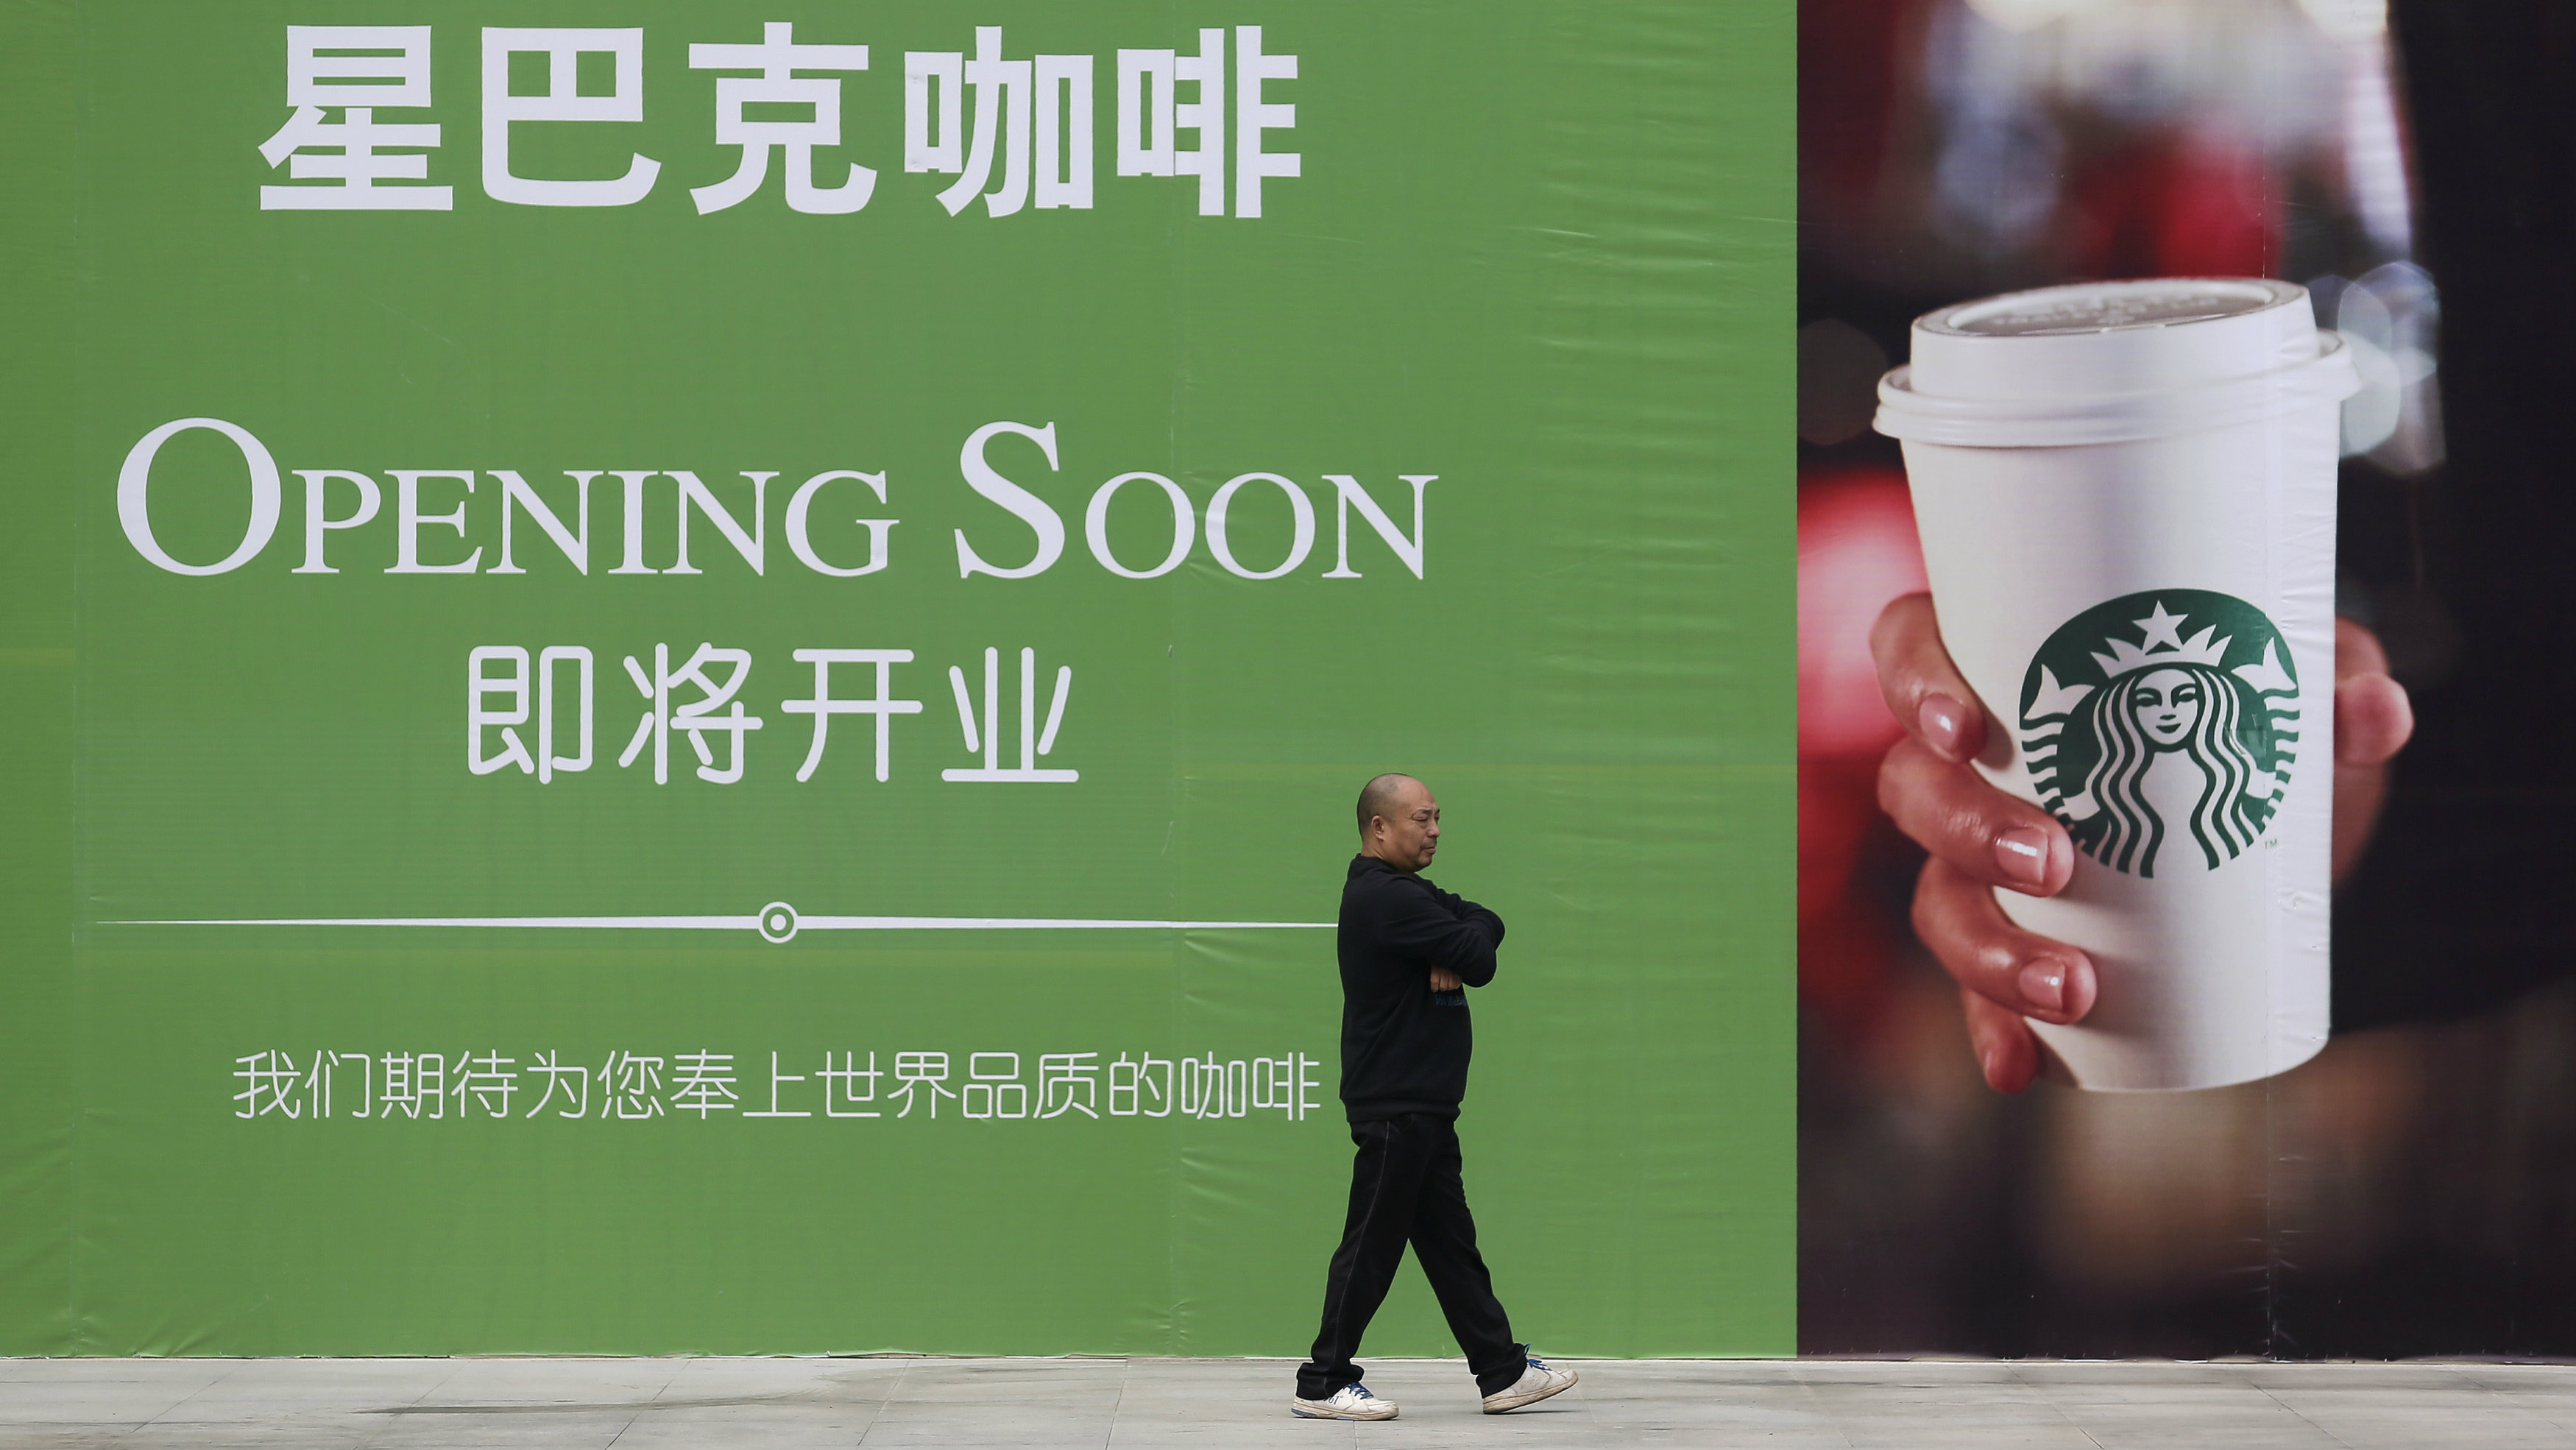 A man walks past an advertisement board of Starbucks in Wuhan, Hubei province, in this October 29, 2013 file photo. A China state television investigative report accusing Starbucks of overcharging local customers for coffee triggered enormous disquiet among journalists at the network and even some soul-searching after it aired.